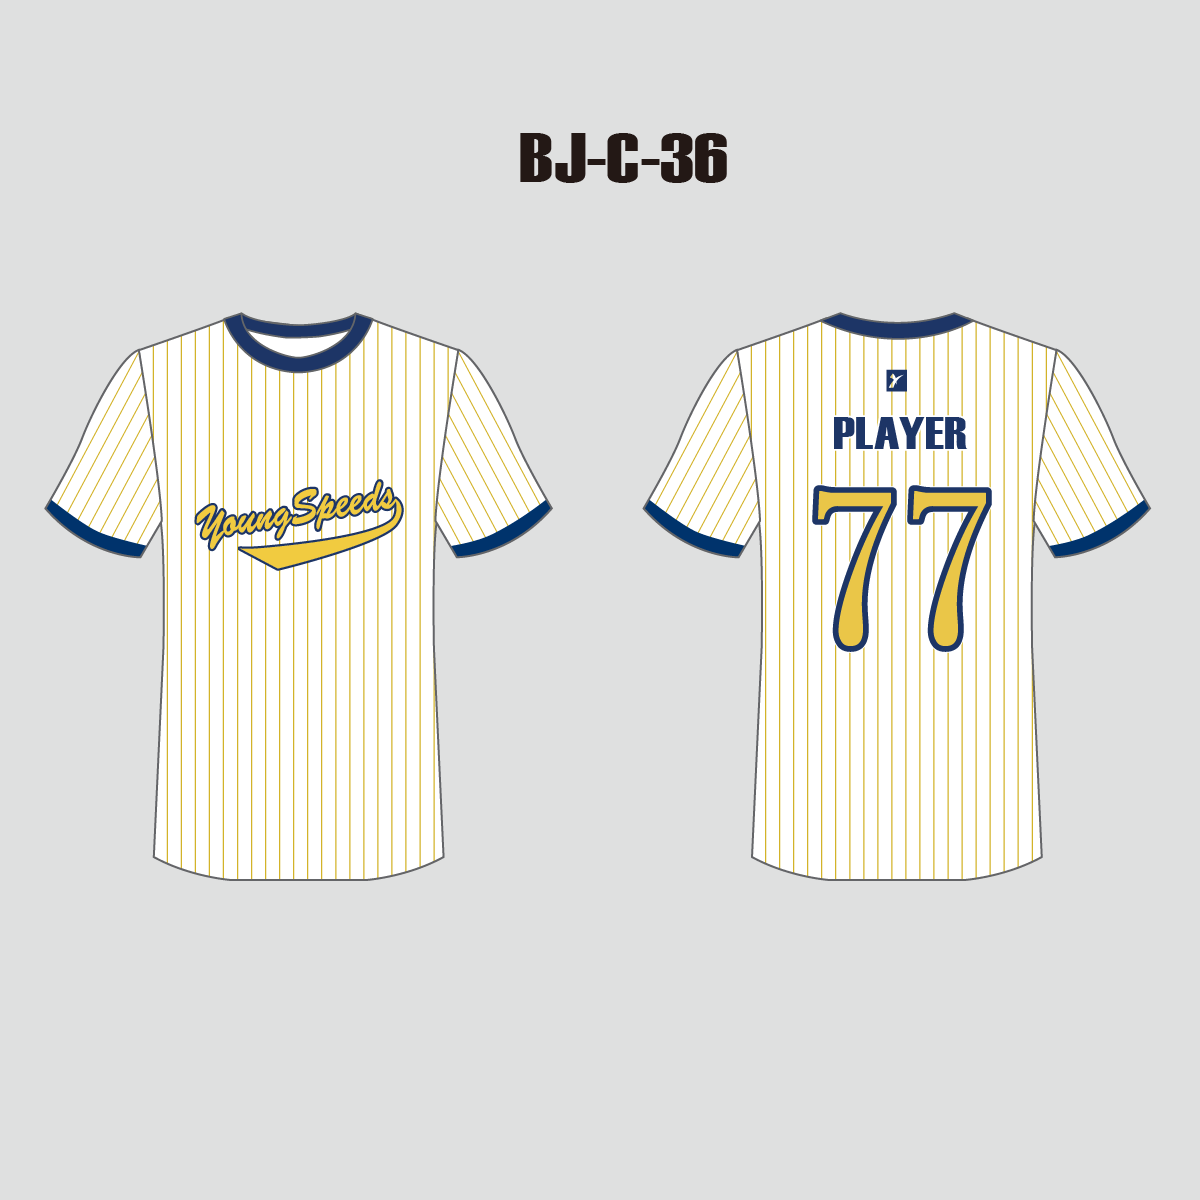 Pinstripe Custom Baseball Shirts for Men and Women - YoungSpeeds